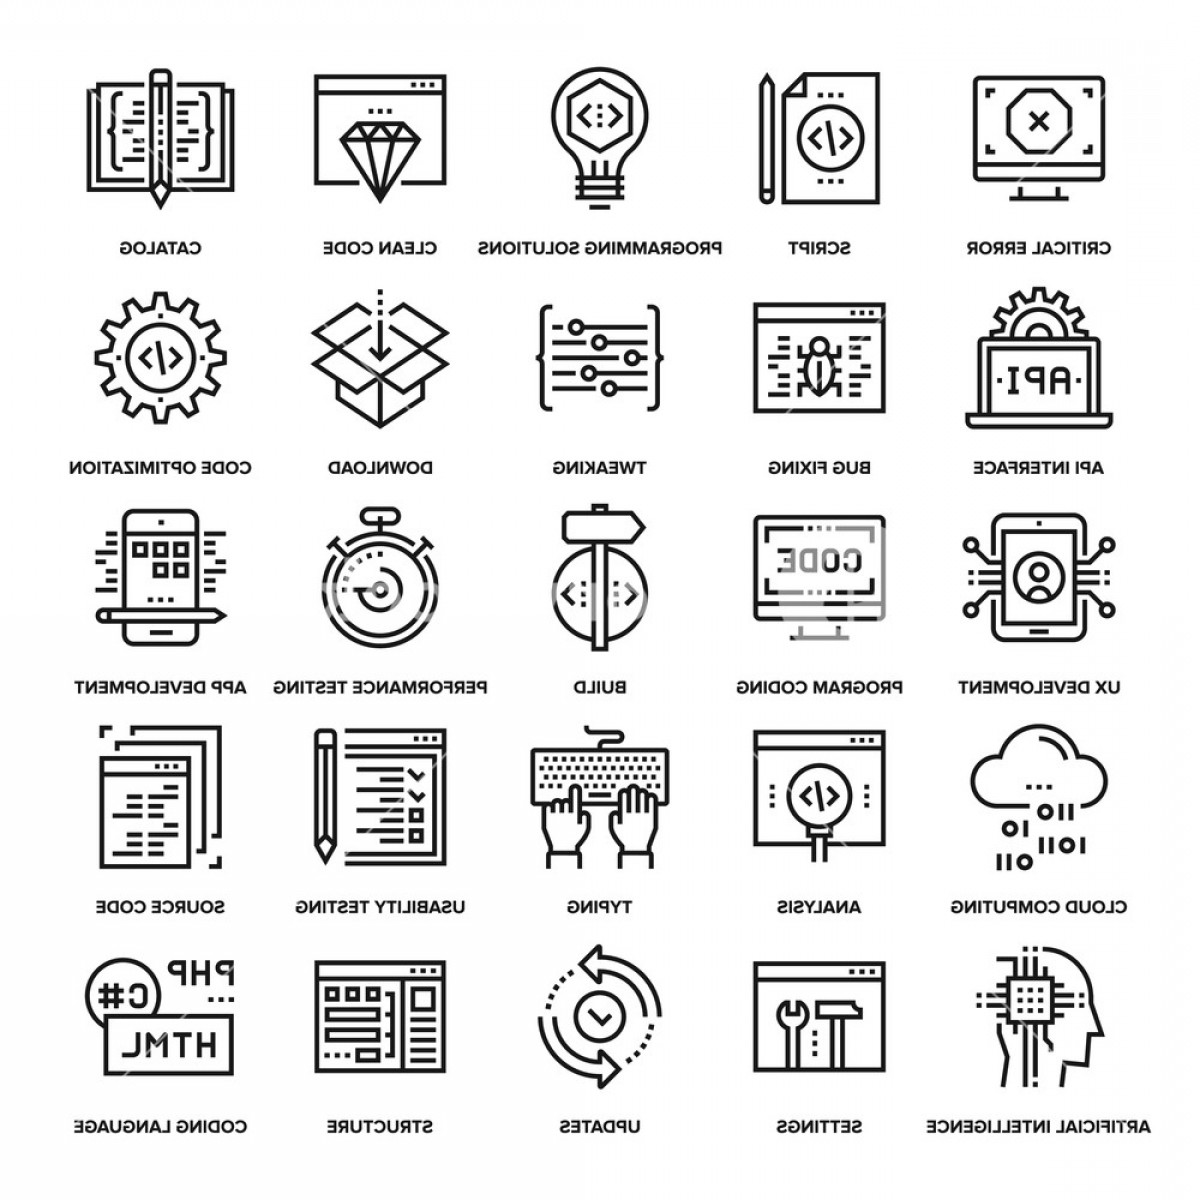 Vector Web Code: Abstract Vector Collection Of Line Program Coding Icons Elements For Mobile And Web Applications Hegnntonclizreu